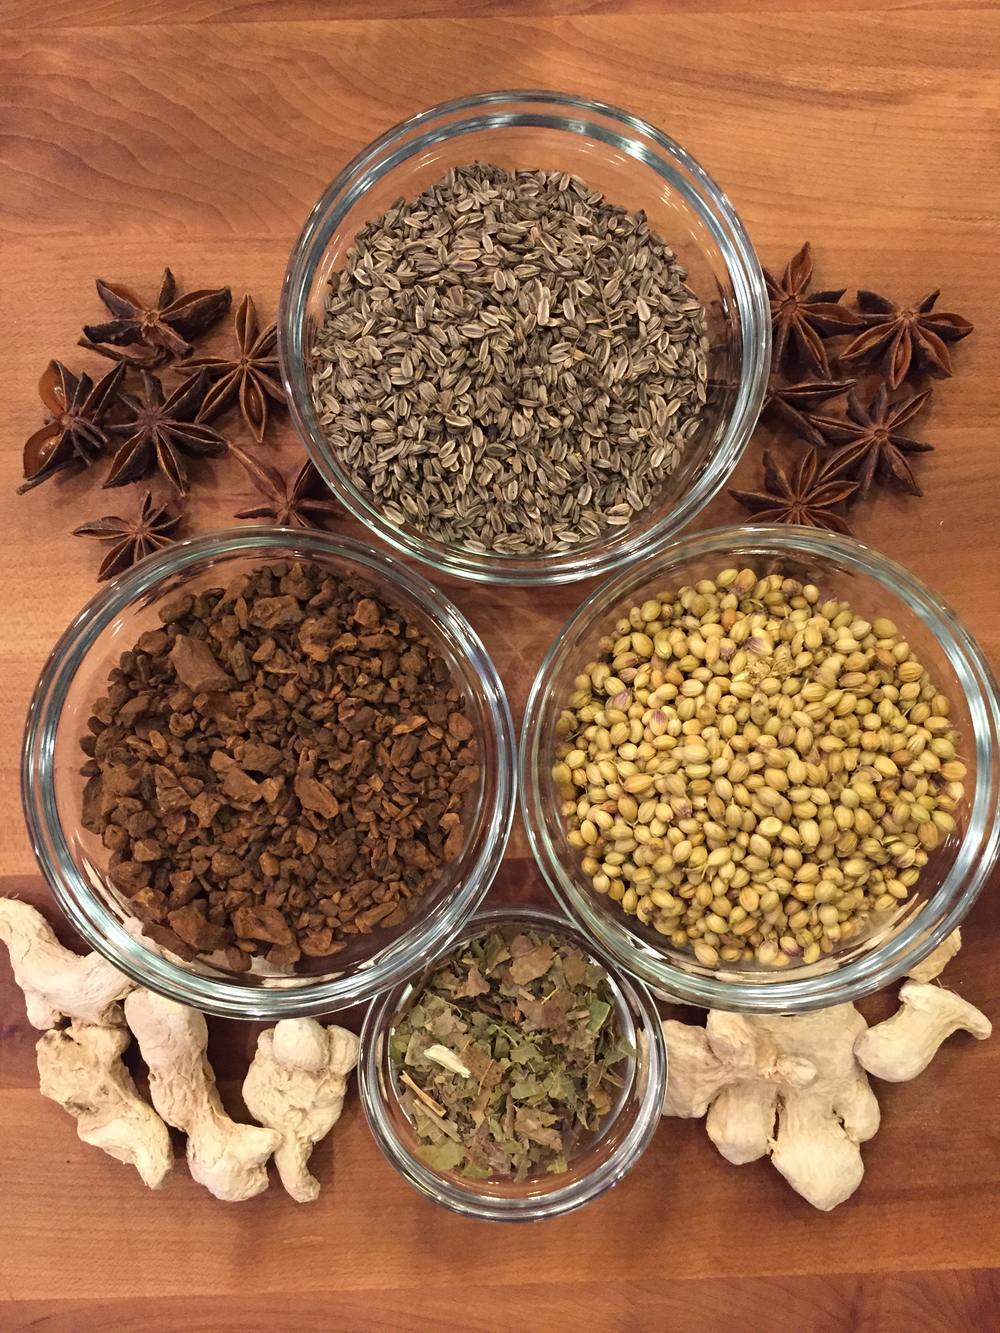 Almost all of the above can be sourced locally. In the bowls, from top, clockwise: black fennel seed, coriander seed, black walnut leaves, and chicory root. On the board, from top, star anise and dehydrated ginger.